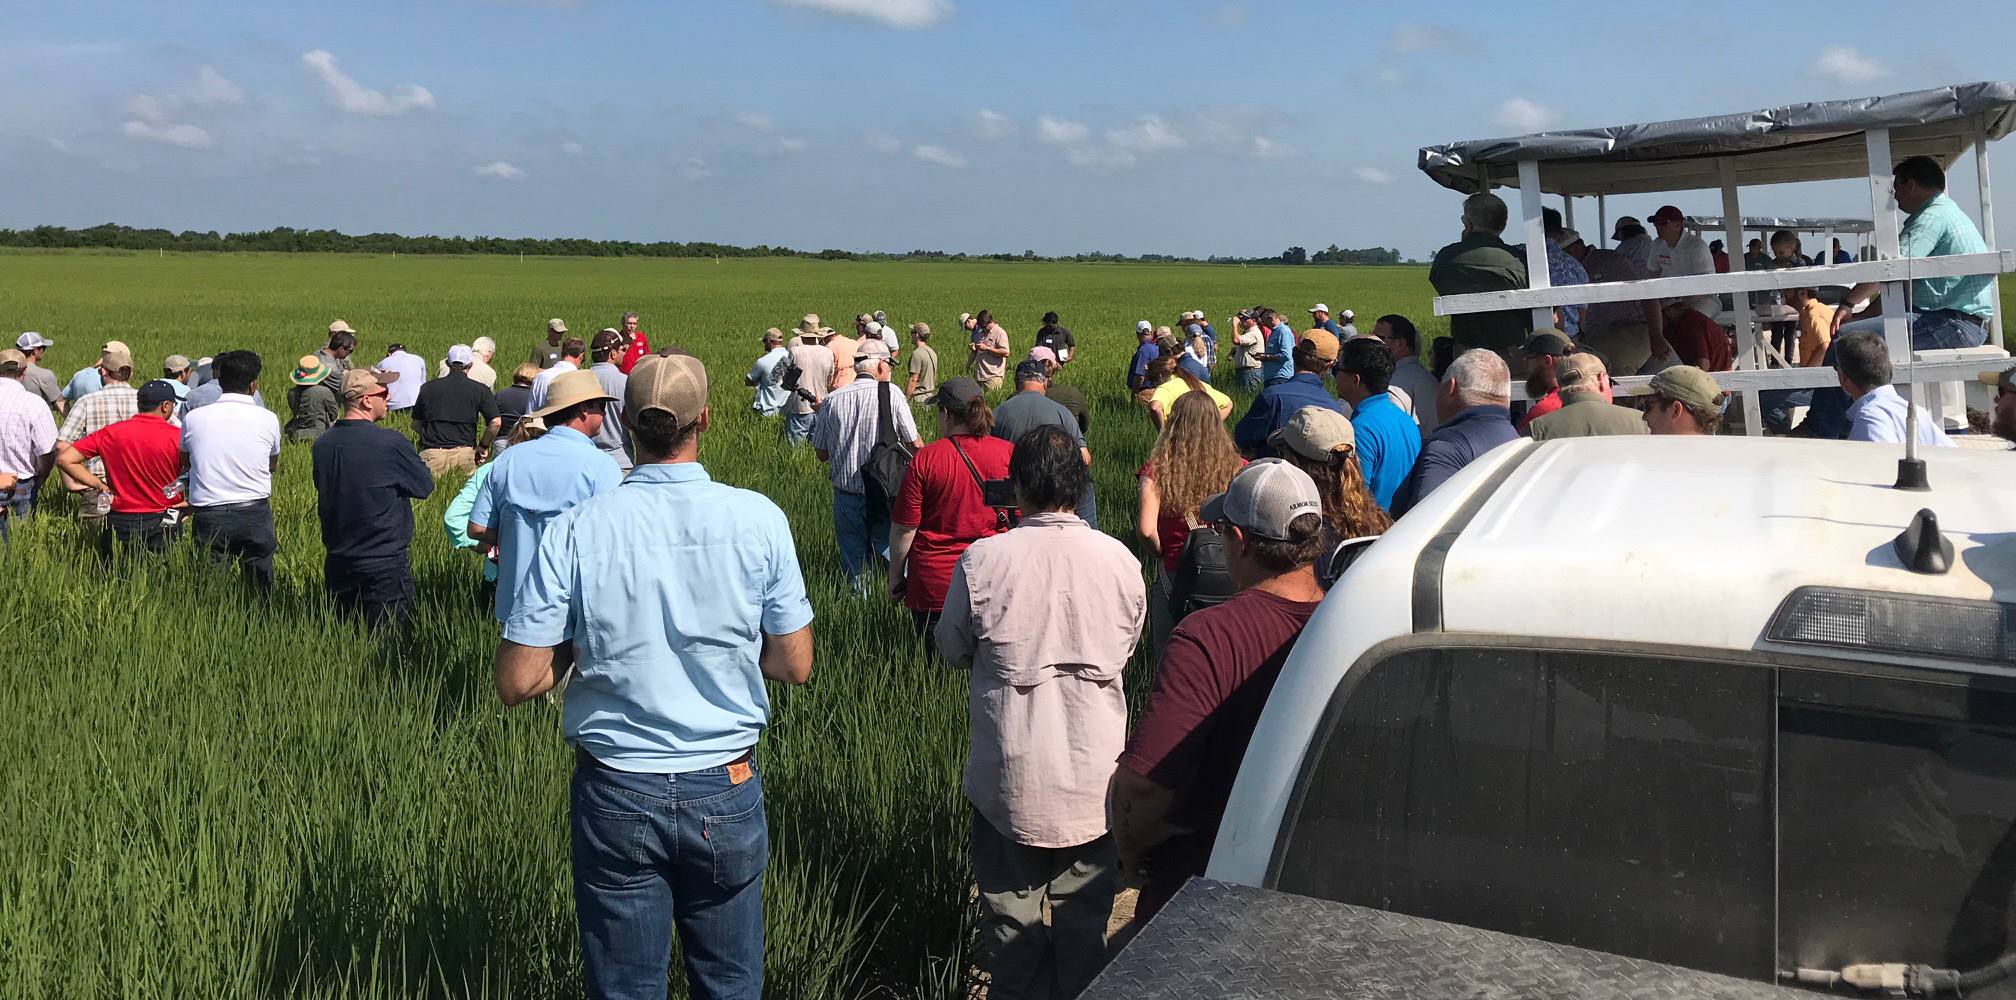 Lots of people gathered in a rice field next to trucks pulling trailers with more people on board